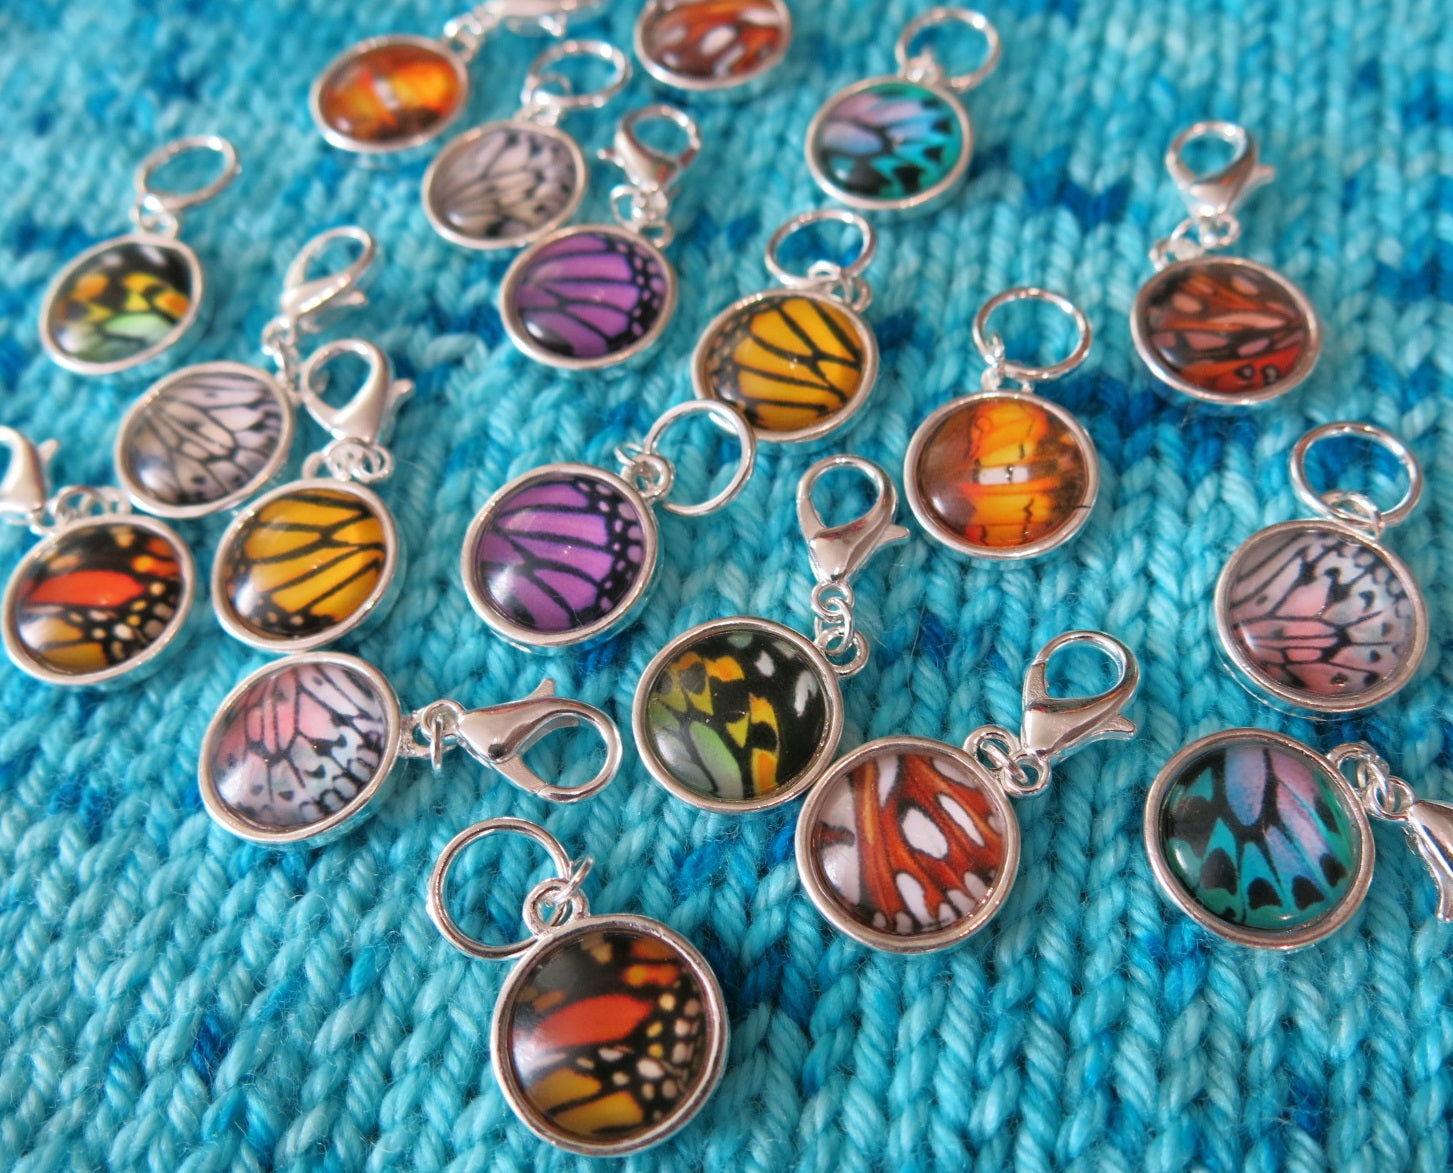 butterfly wing progress keeper stitch markers for knitting and crochet